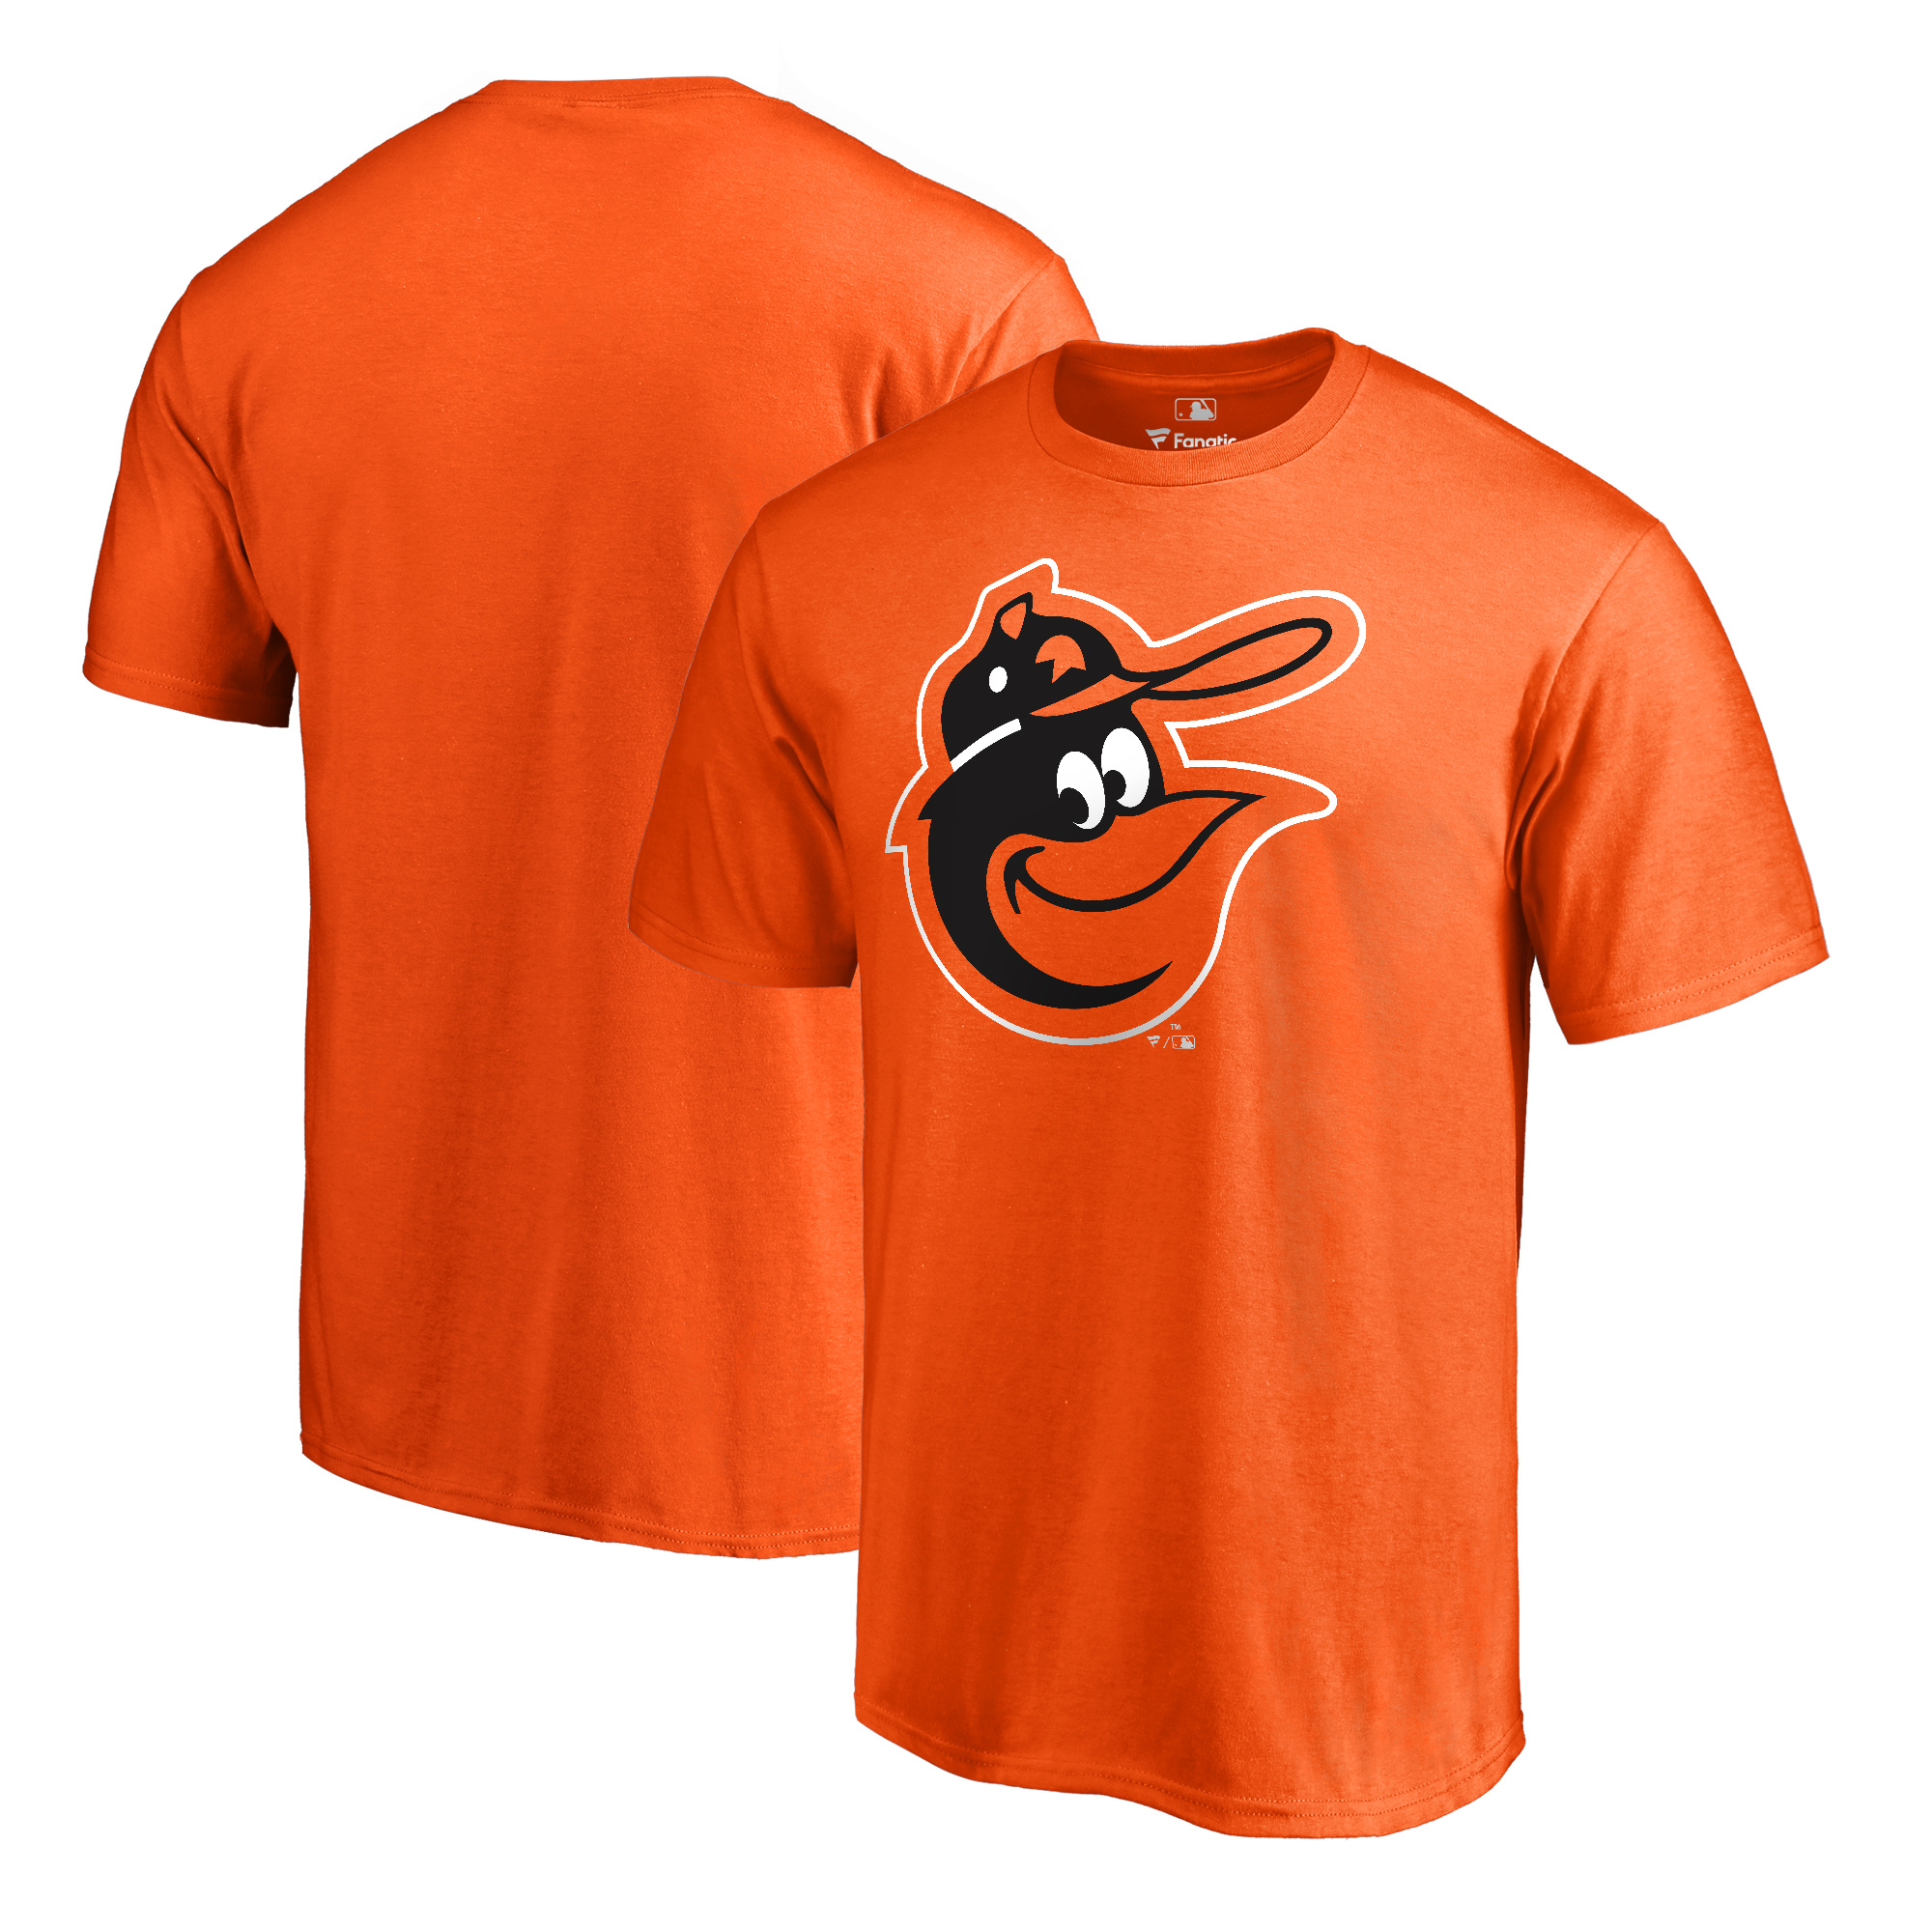 Baltimore Orioles Fanatics Branded Cooperstown Collection Huntington T-Shirt - Orange